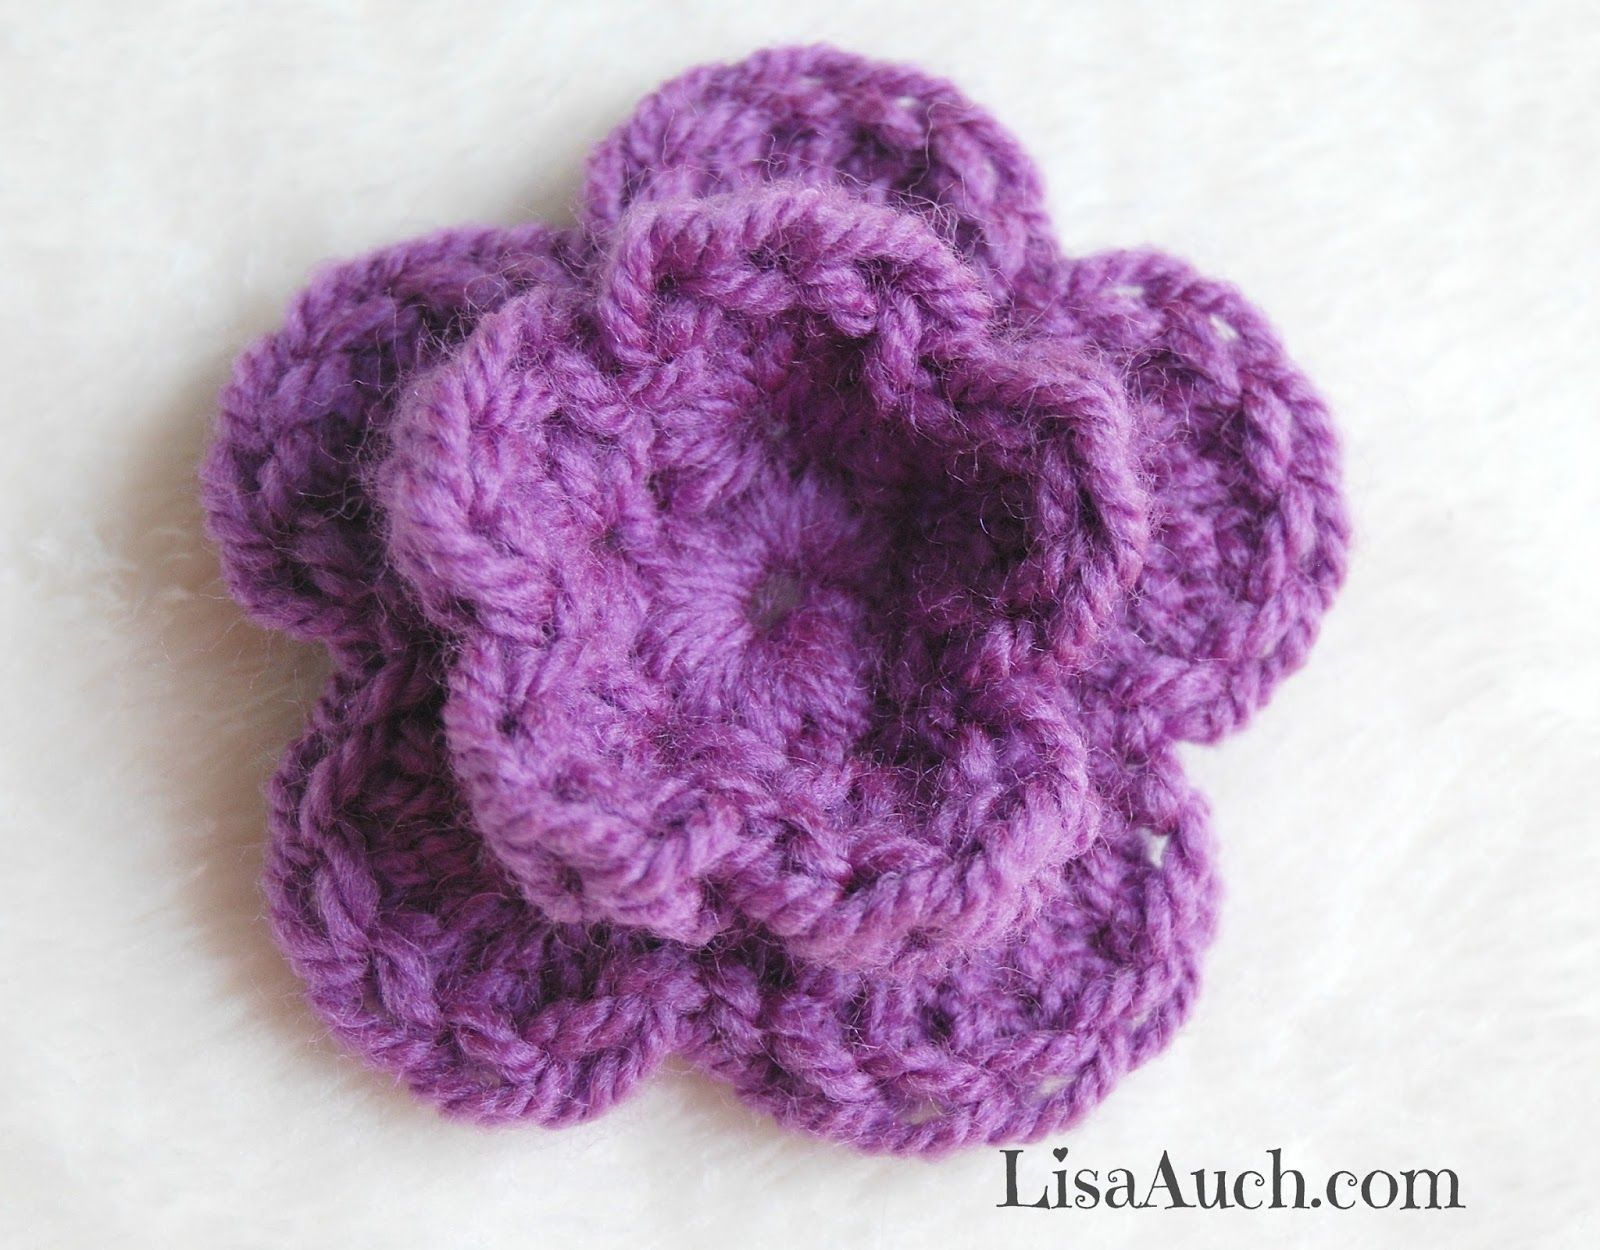 How to crochet a small double layer 3d flower in 8 easy steps by how to crochet a small double layer 3d flower in 8 easy steps by lisa auch bankloansurffo Images